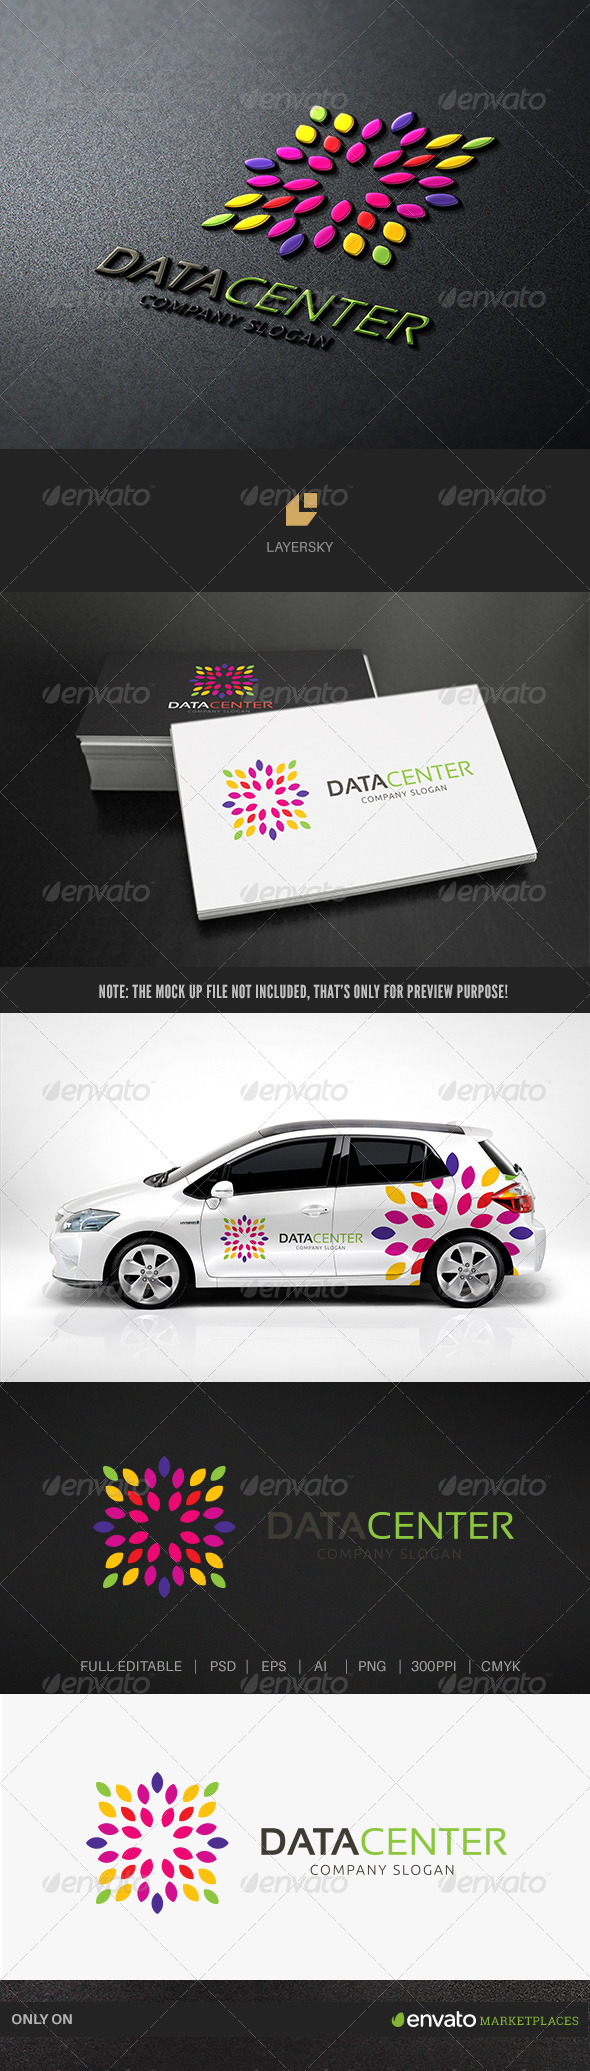 Data Center II - Nature Logo Templates